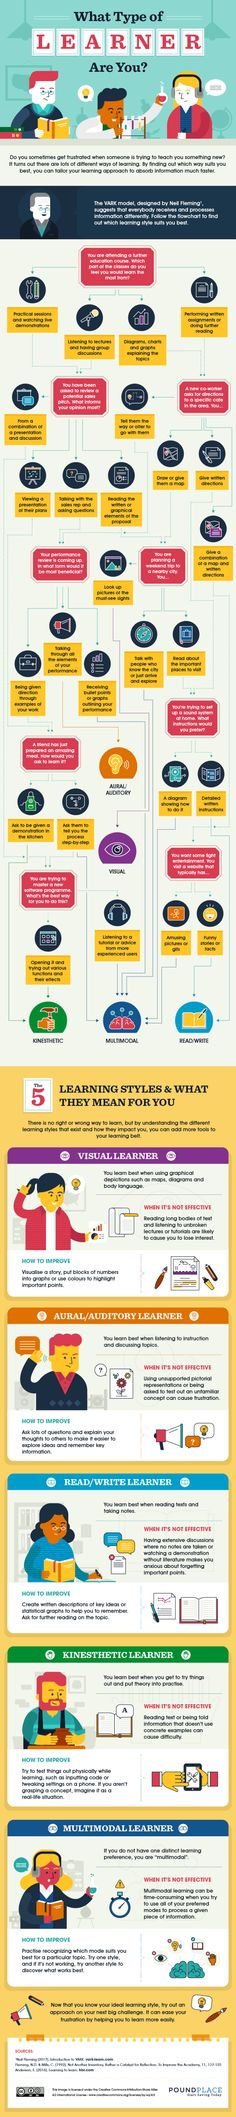 What type of learner are you? Did you know we all learn very differently? By understanding YOUR learning type, you'll better set yourself up for success to learn quickly and effectively in your studies, your job or with anything you're passionate about! Future Career Quiz, Do You Know What, Told You So, Types Of Learners, Job Security, Data Charts, What Type, Learning Styles, Financial Literacy